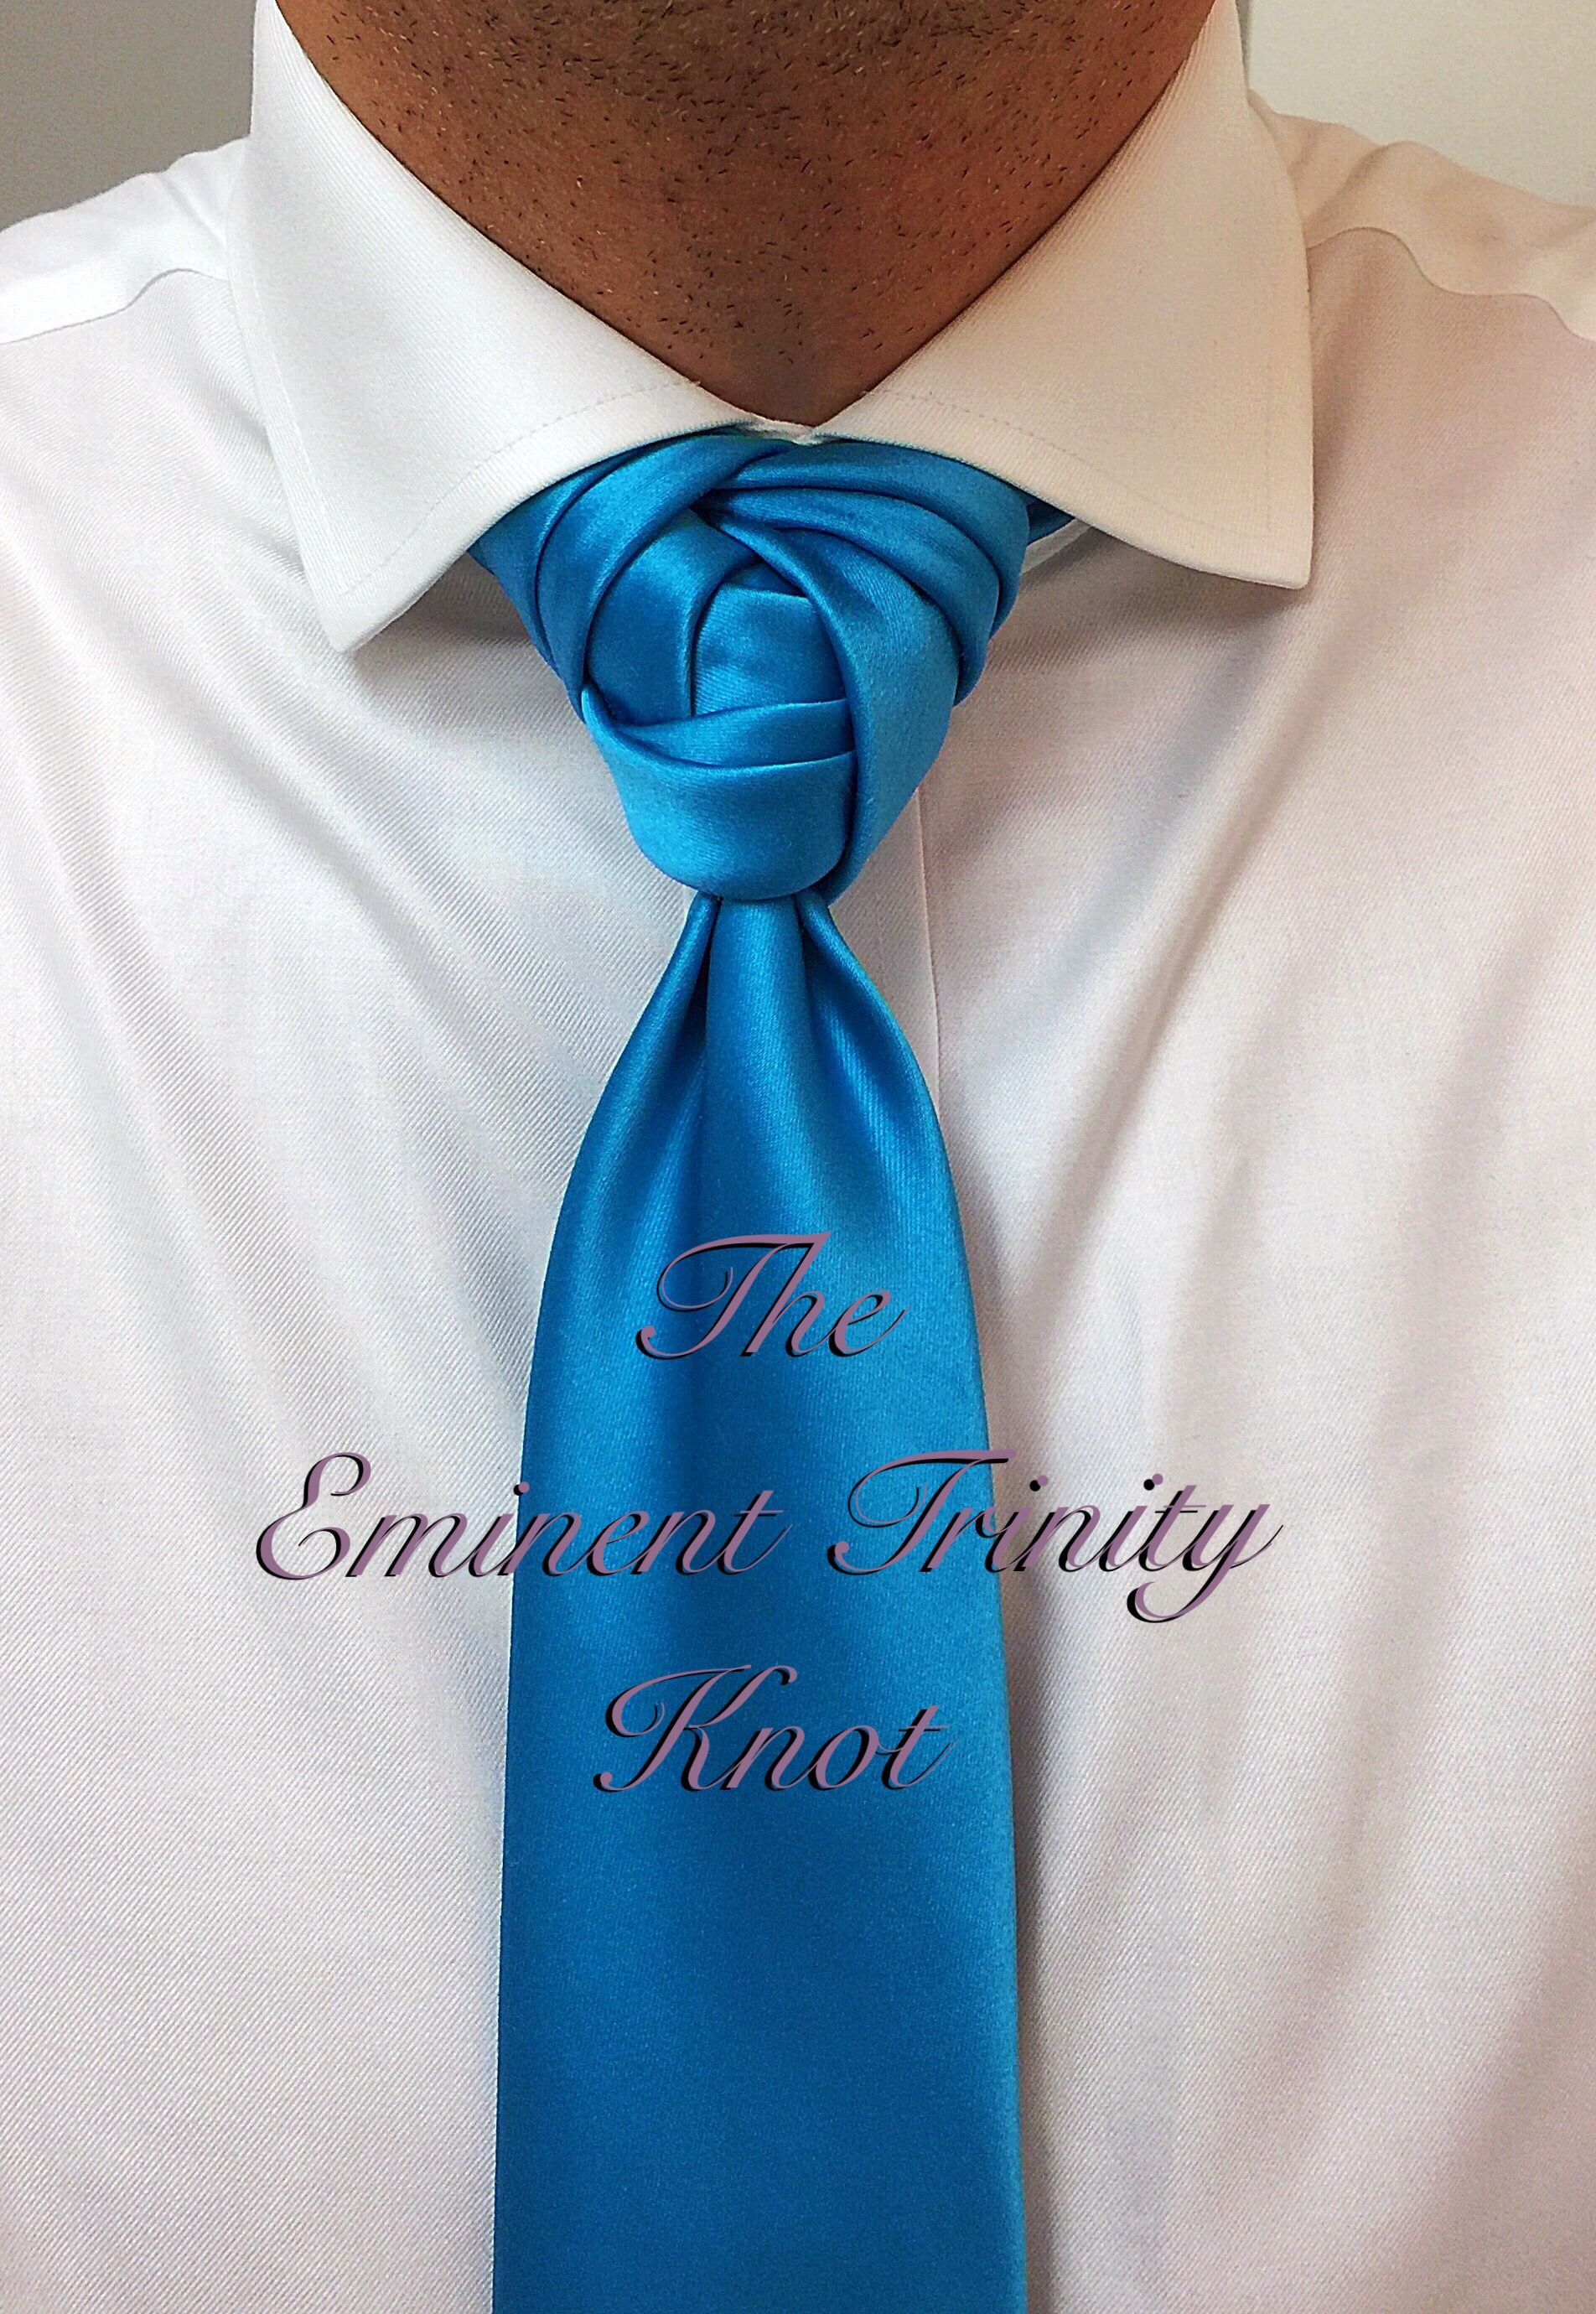 Knot By Boris Mocka With Images Neck Tie Knots Cool Tie Knots